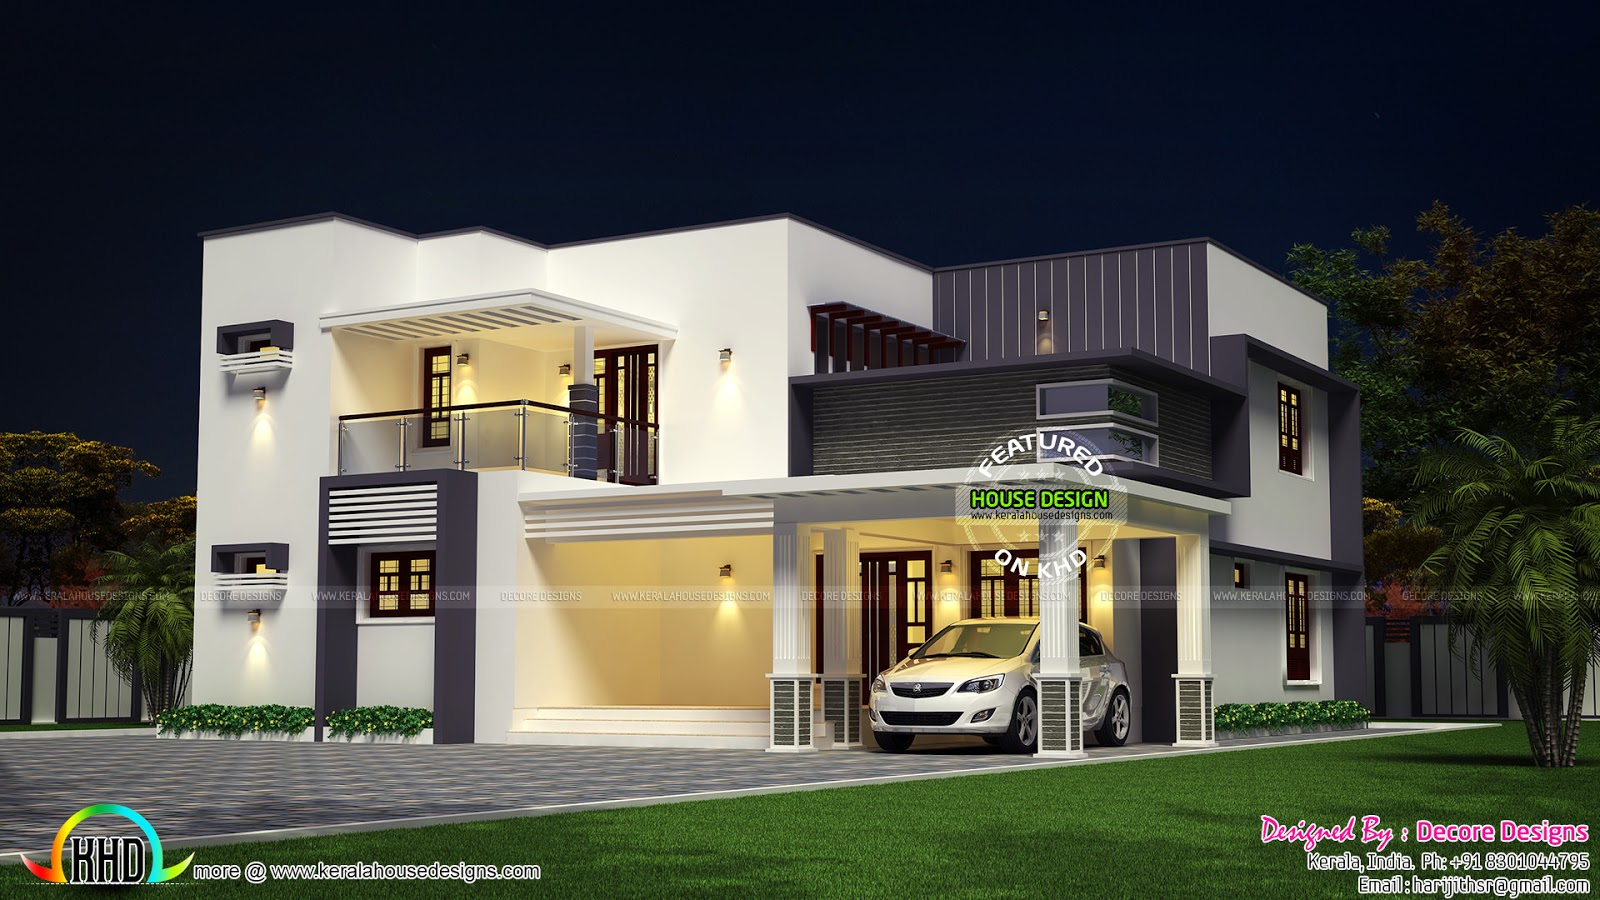 Flat roof modern 2430 sq ft house kerala home design and for Kerala home design flat roof elevation